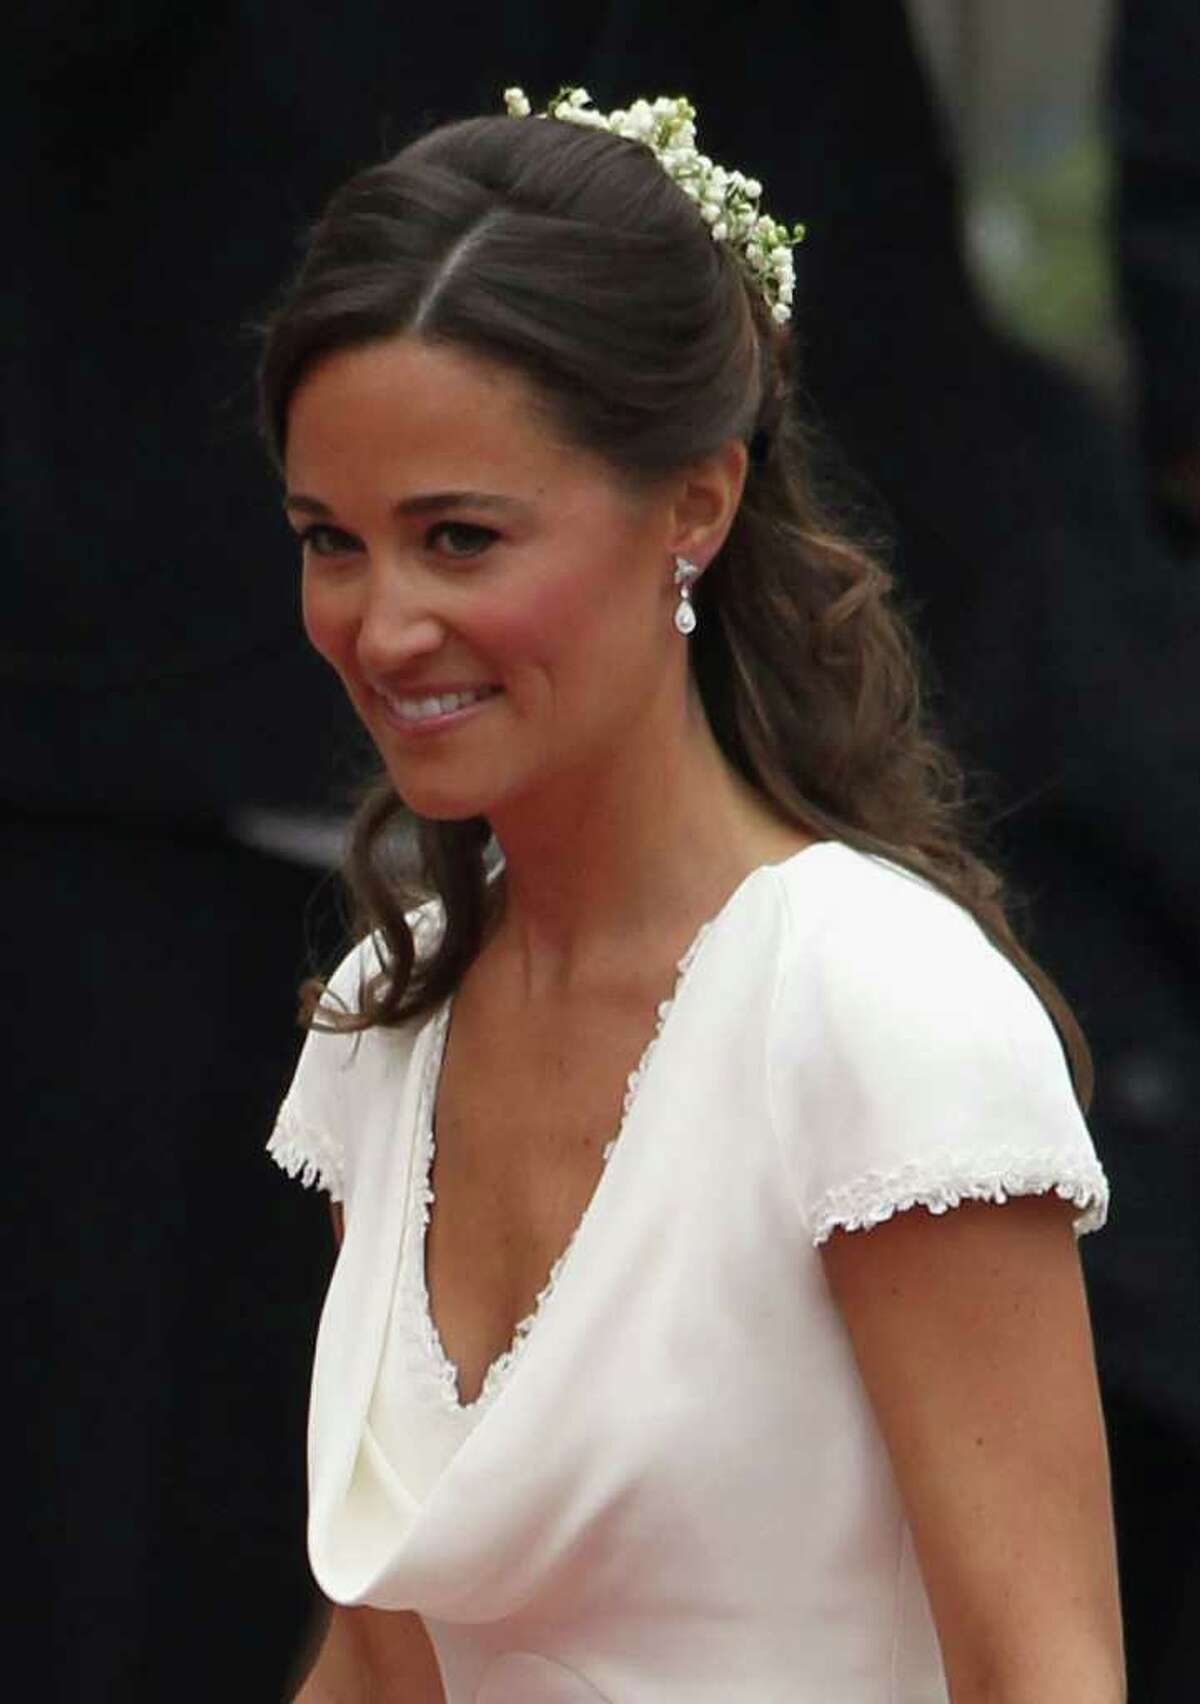 LONDON, ENGLAND - APRIL 29: Sister of the bride and Maid of Honour Pippa Middleton arrives to attend the Royal Wedding of Prince William to Catherine Middleton at Westminster Abbey on April 29, 2011 in London, England. The marriage of the second in line to the British throne is to be led by the Archbishop of Canterbury and will be attended by 1900 guests, including foreign Royal family members and heads of state. Thousands of well-wishers from around the world have also flocked to London to witness the spectacle and pageantry of the Royal Wedding. (Photo by Dan Kitwood/Getty Images) *** Local Caption *** Pippa Middleton;